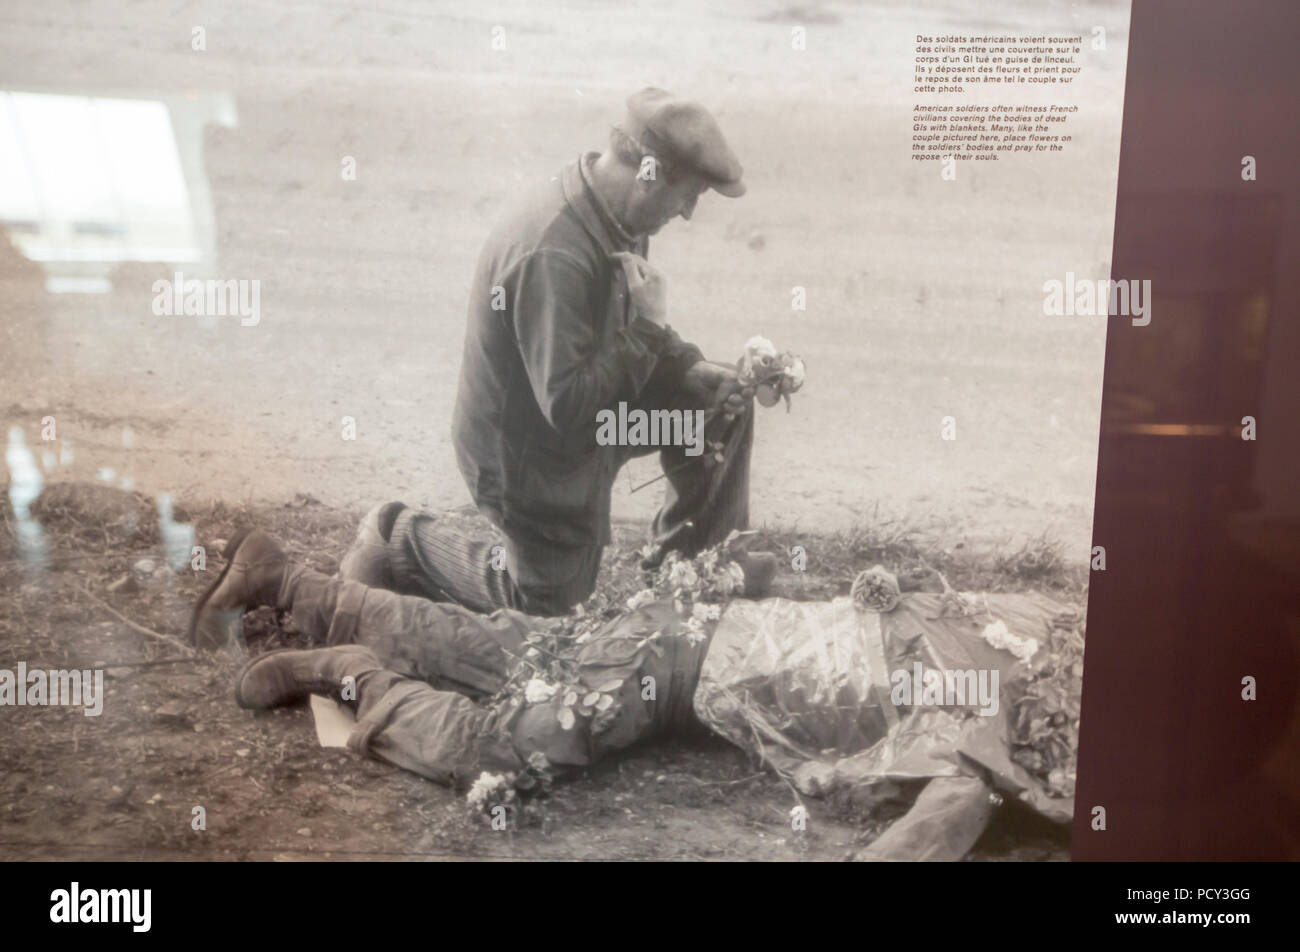 A photo of a French person laying flowers on the body of a dead American soldier, as a mark of respect and thanks at the Utah beach D-Day museum, Norm - Stock Image